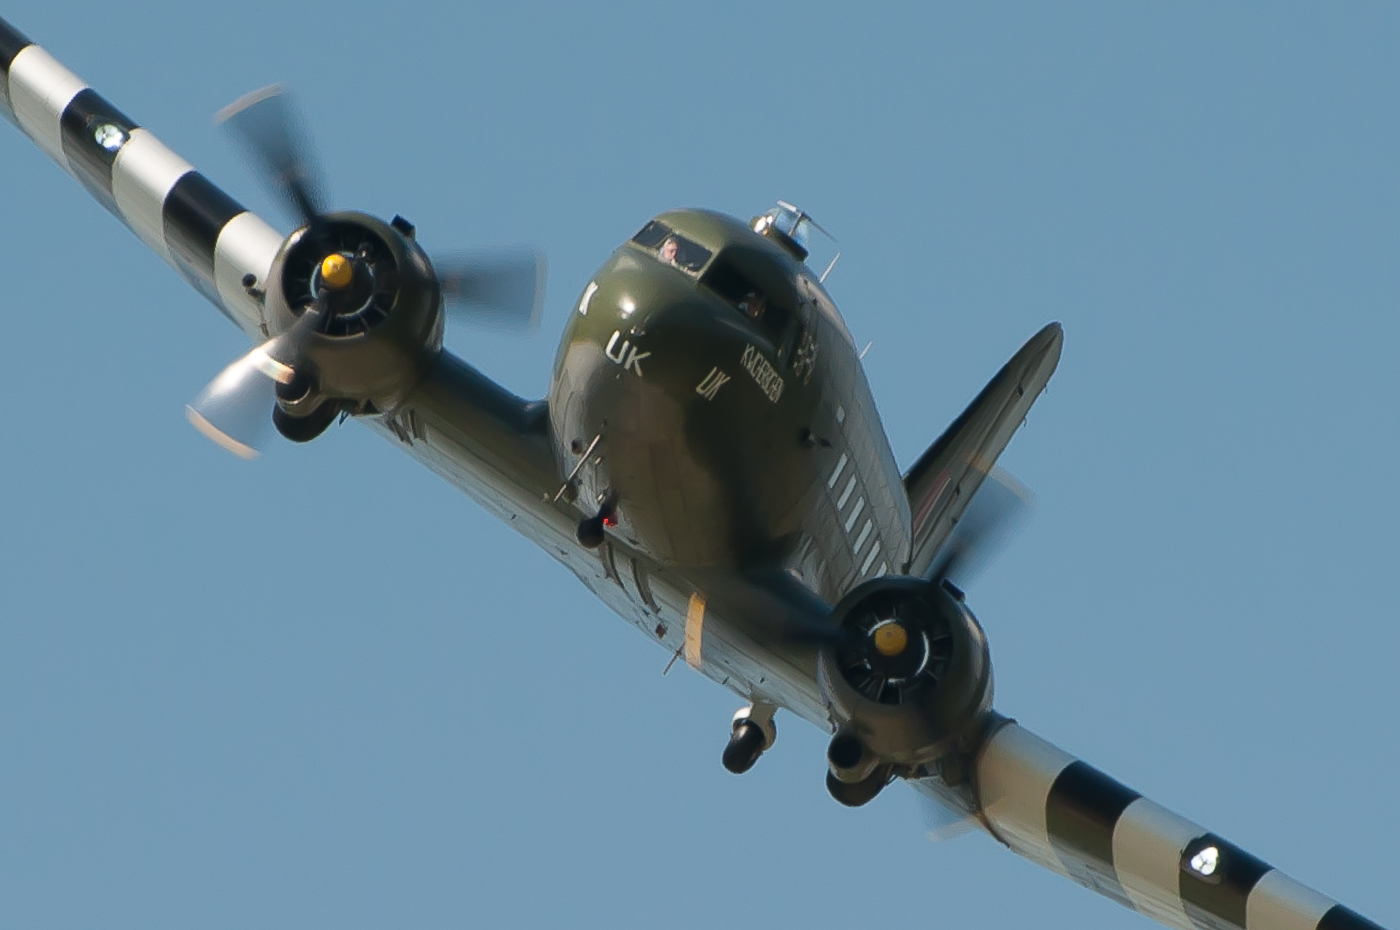 Dakota ZA947 Fly past